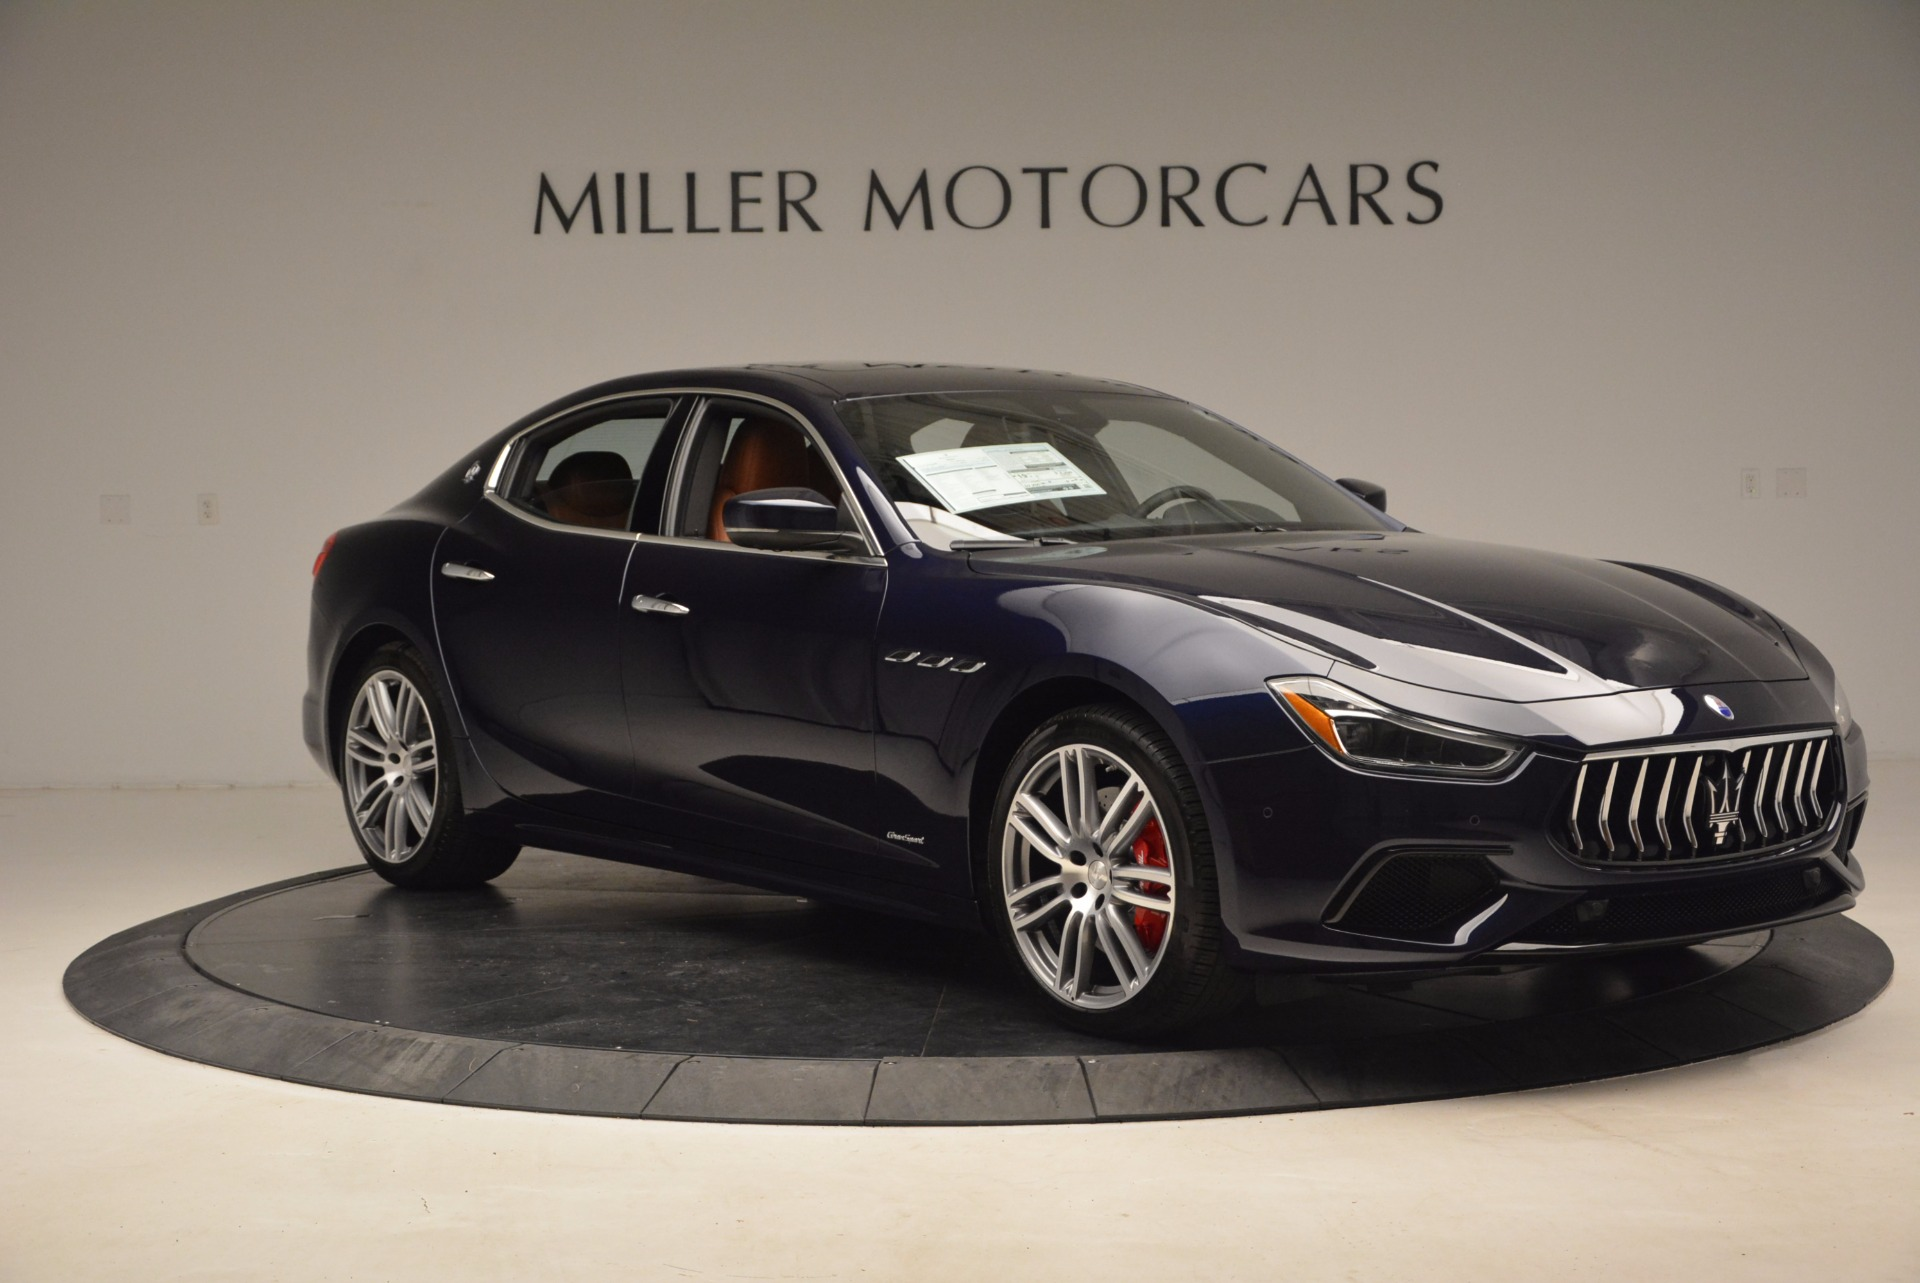 New 2018 Maserati Ghibli S Q4 Gransport For Sale In Greenwich, CT 1562_p11